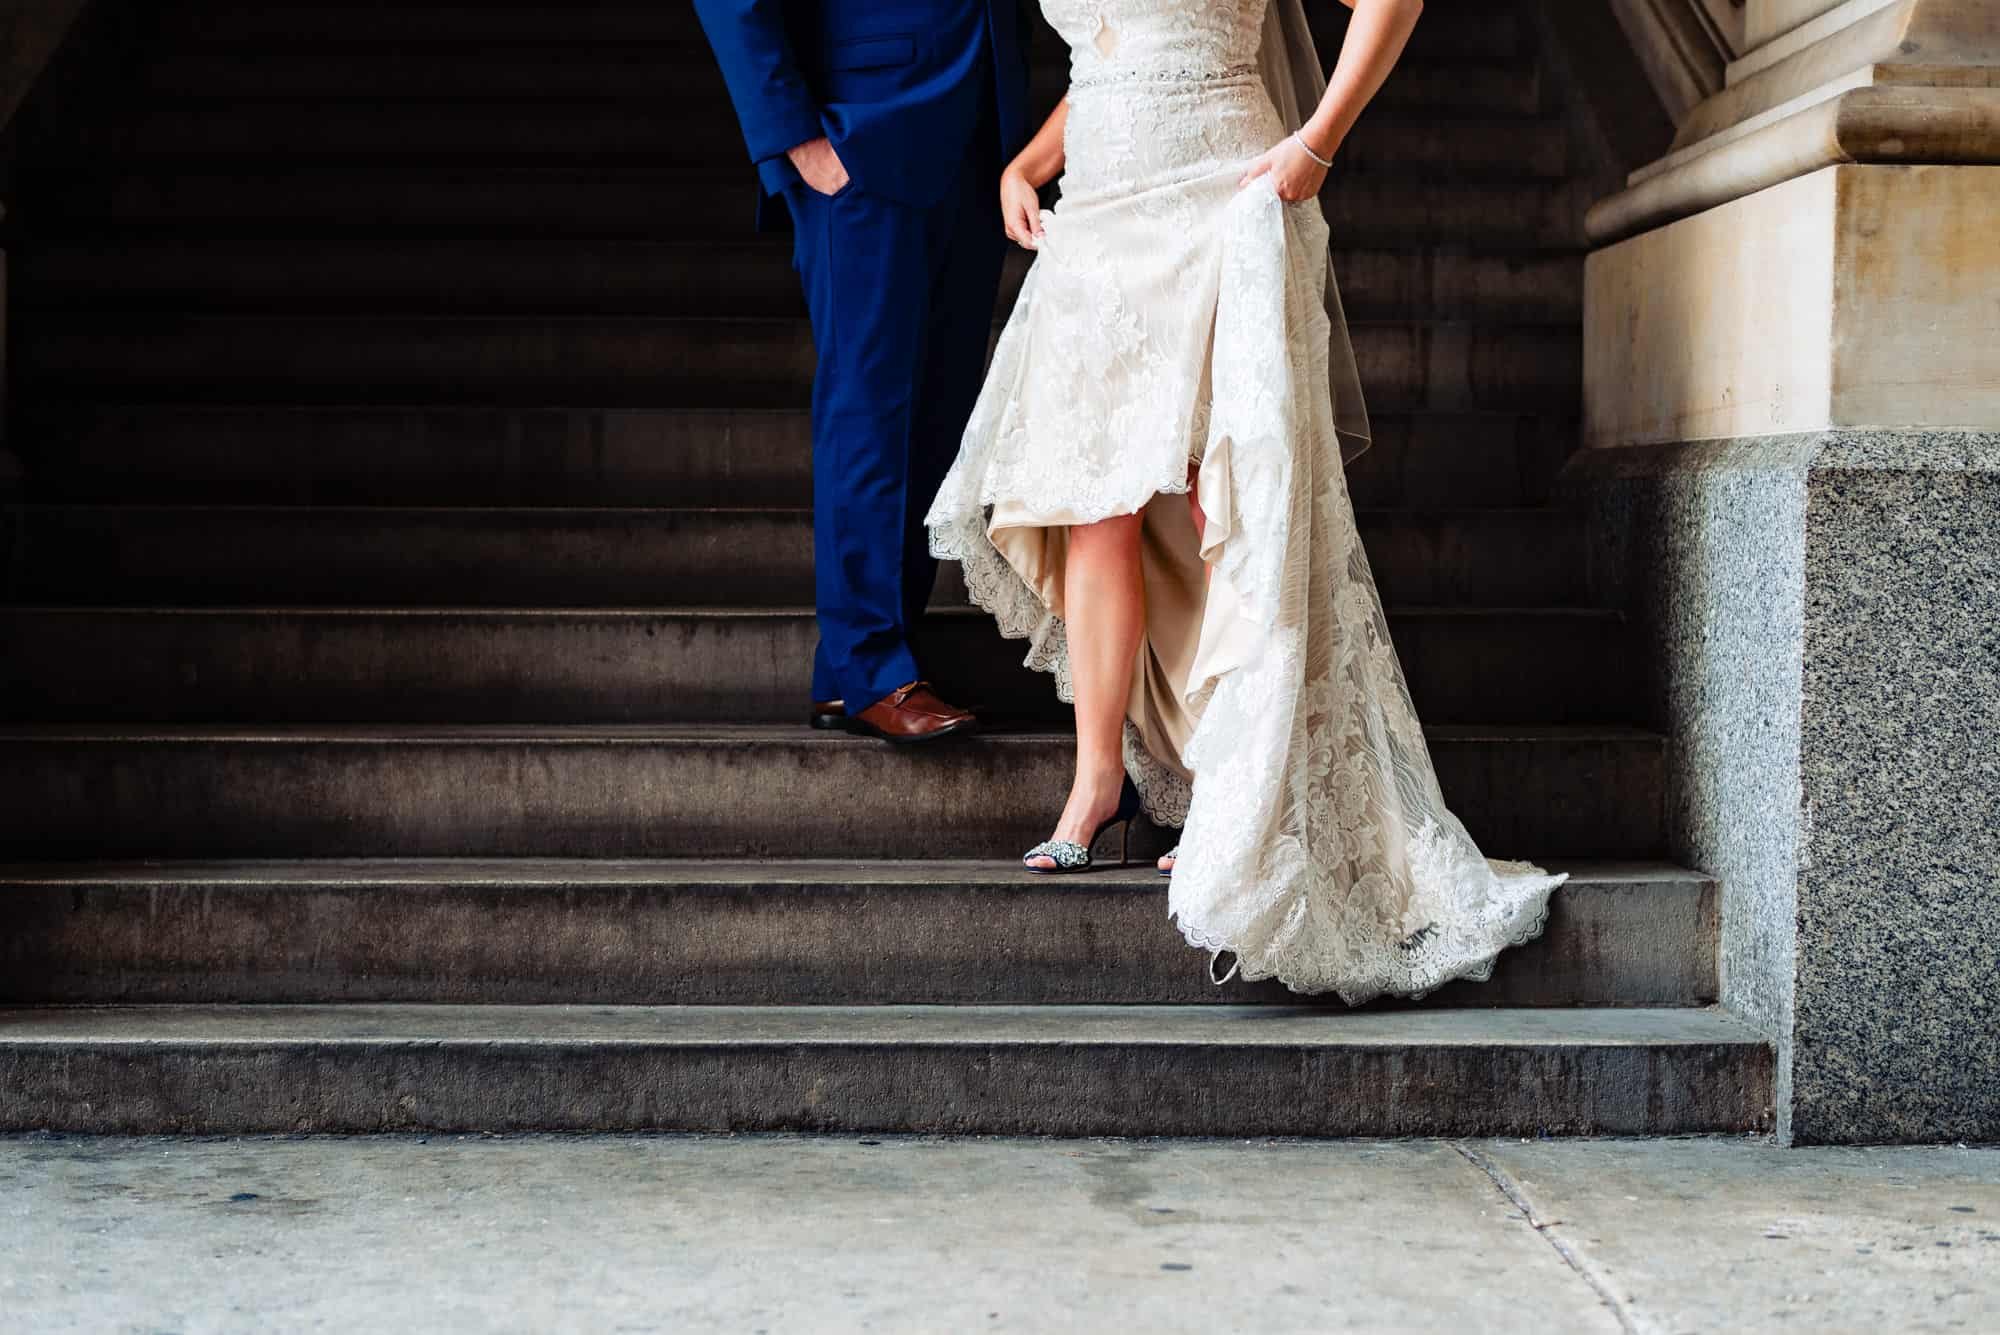 wedding day, shot of the bottom half of the bride and groom while bride is showing off her shoes holding her dress above her knees